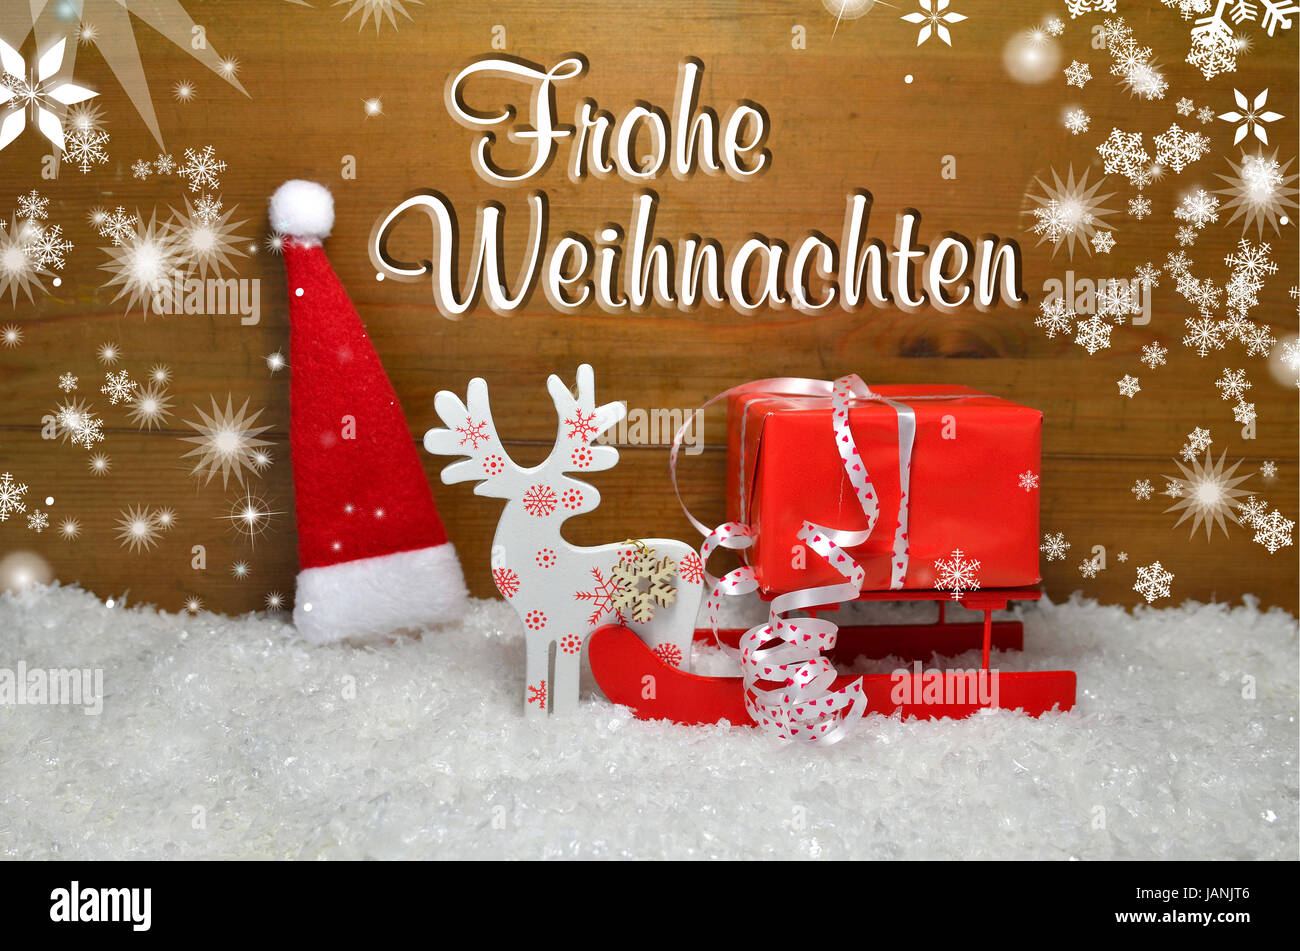 frohe weihnachten kerze stock photos frohe weihnachten kerze stock images alamy. Black Bedroom Furniture Sets. Home Design Ideas